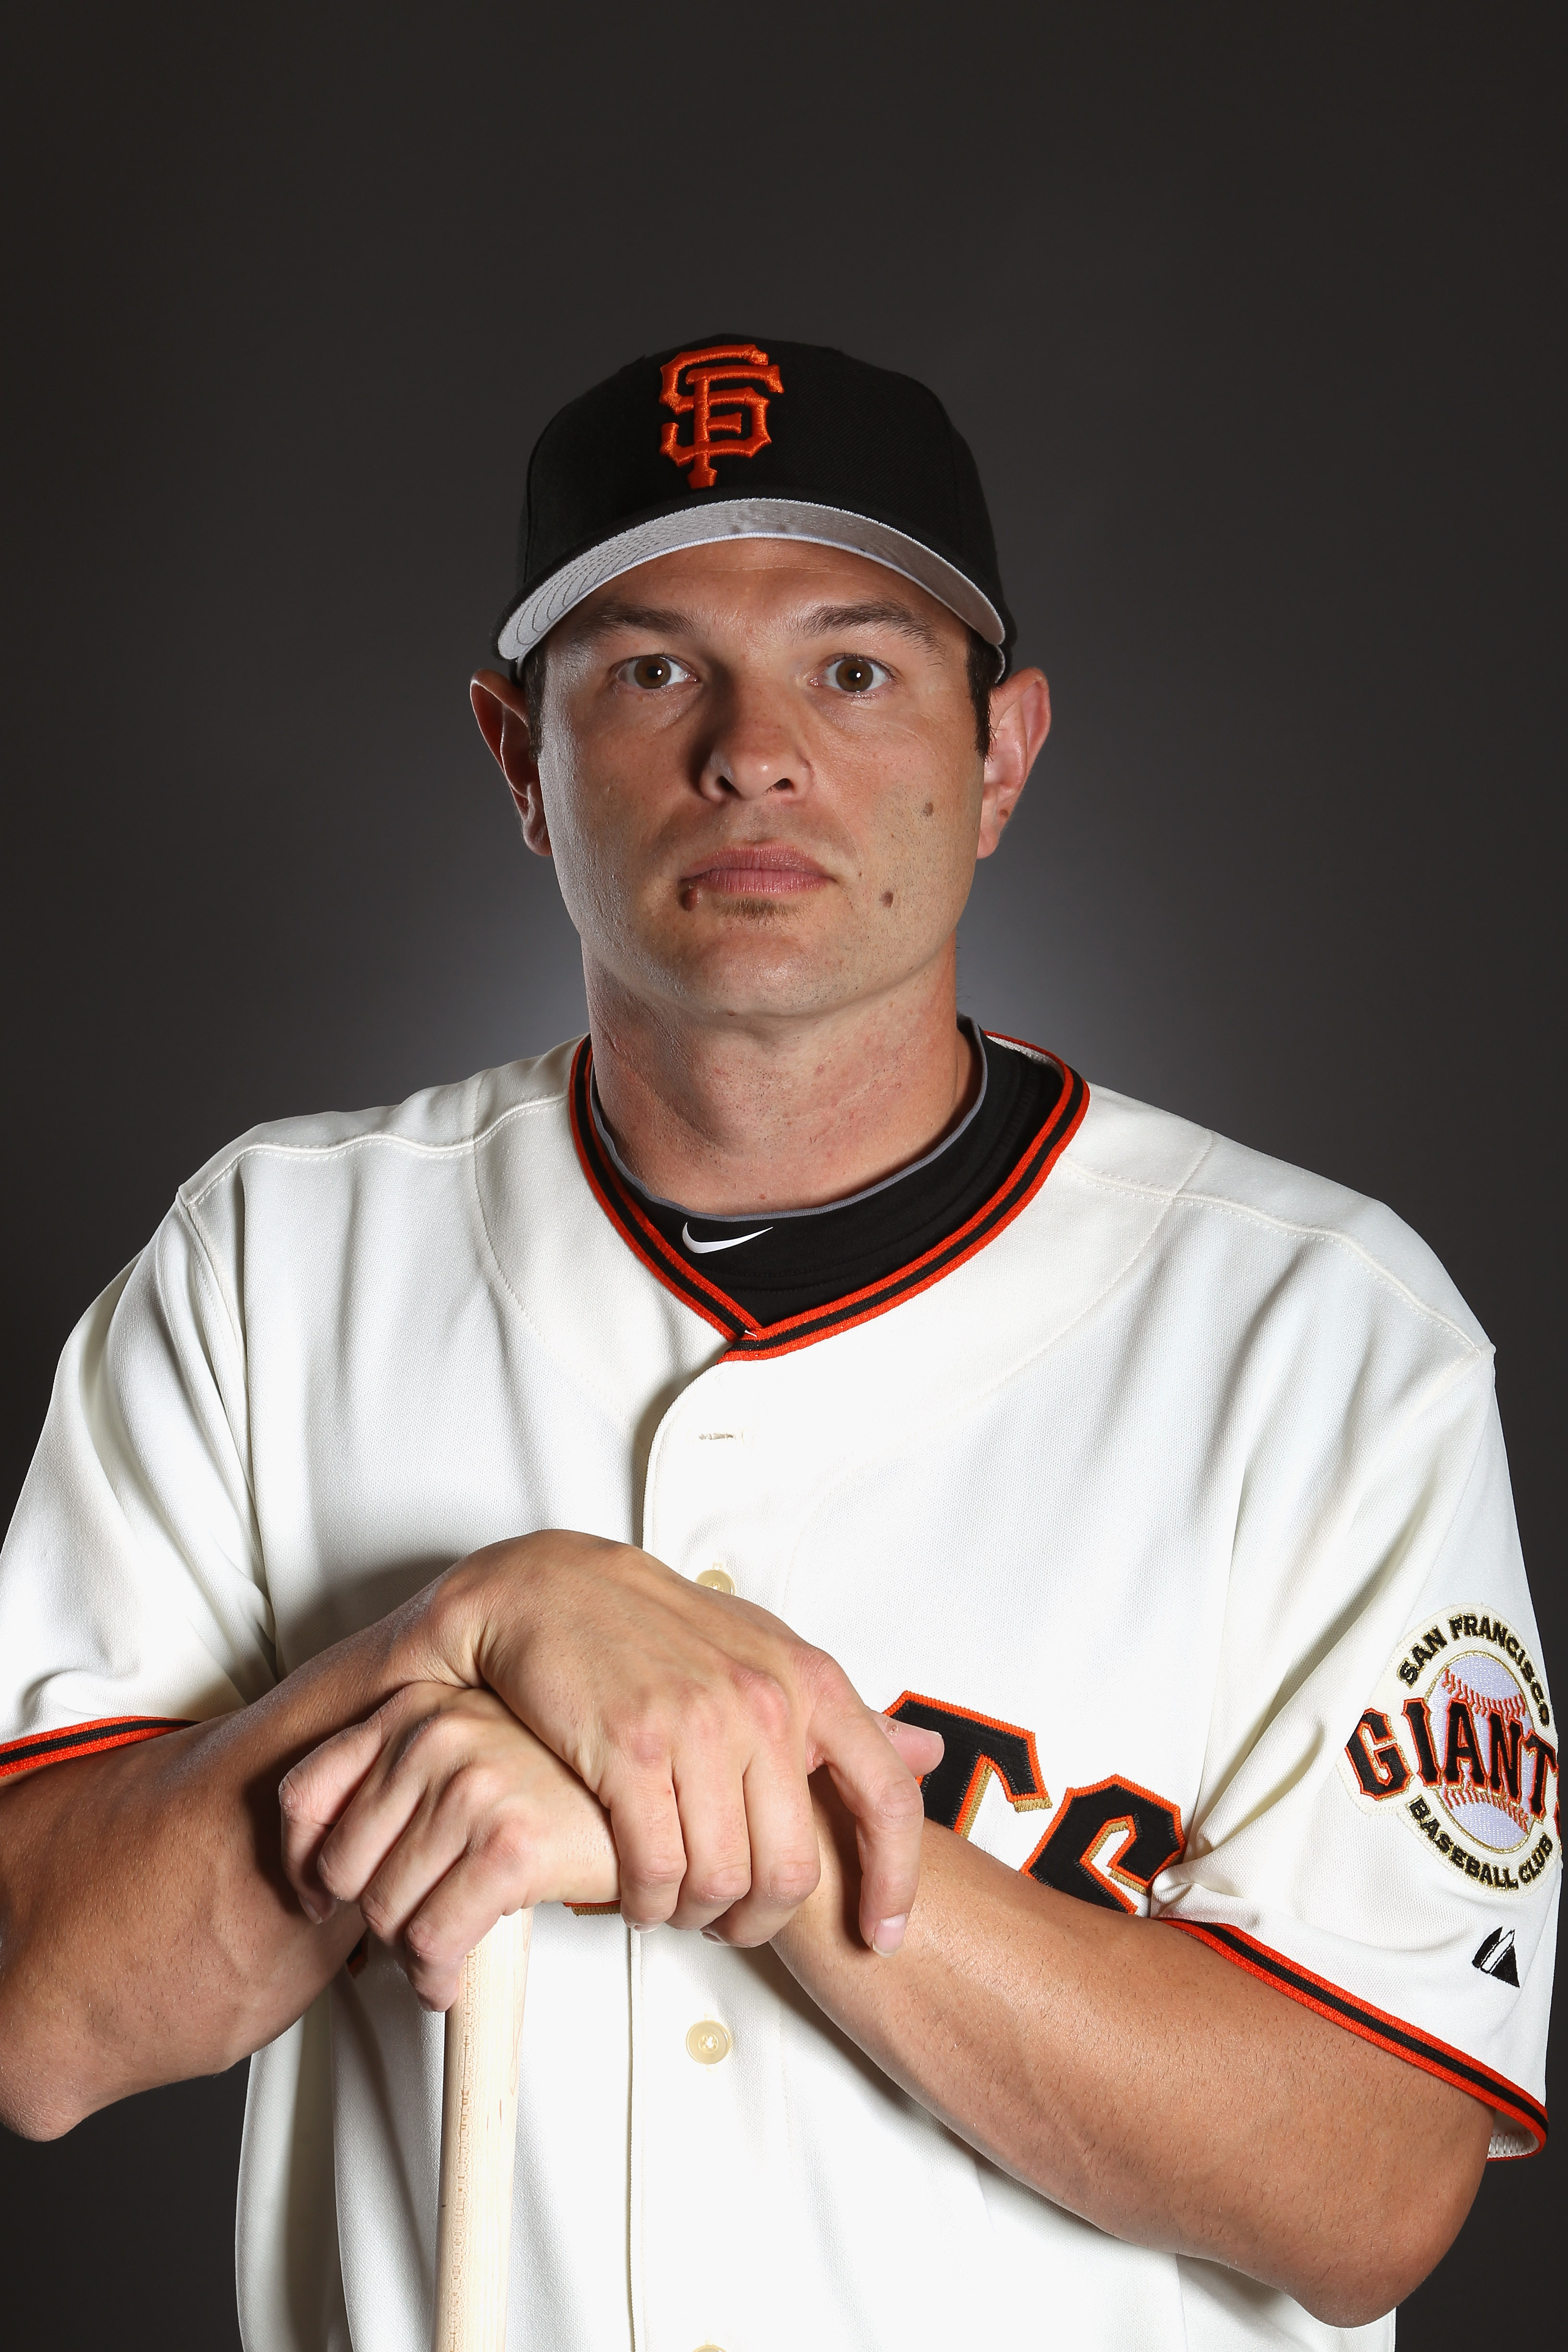 SCOTTSDALE, AZ - FEBRUARY 23:  Freddy Sanchez #21 of the San Francisco Giants poses for a portrait during media photo day at Scottsdale Stadium on February 23, 2011 in Scottsdale, Arizona.  (Photo by Ezra Shaw/Getty Images)